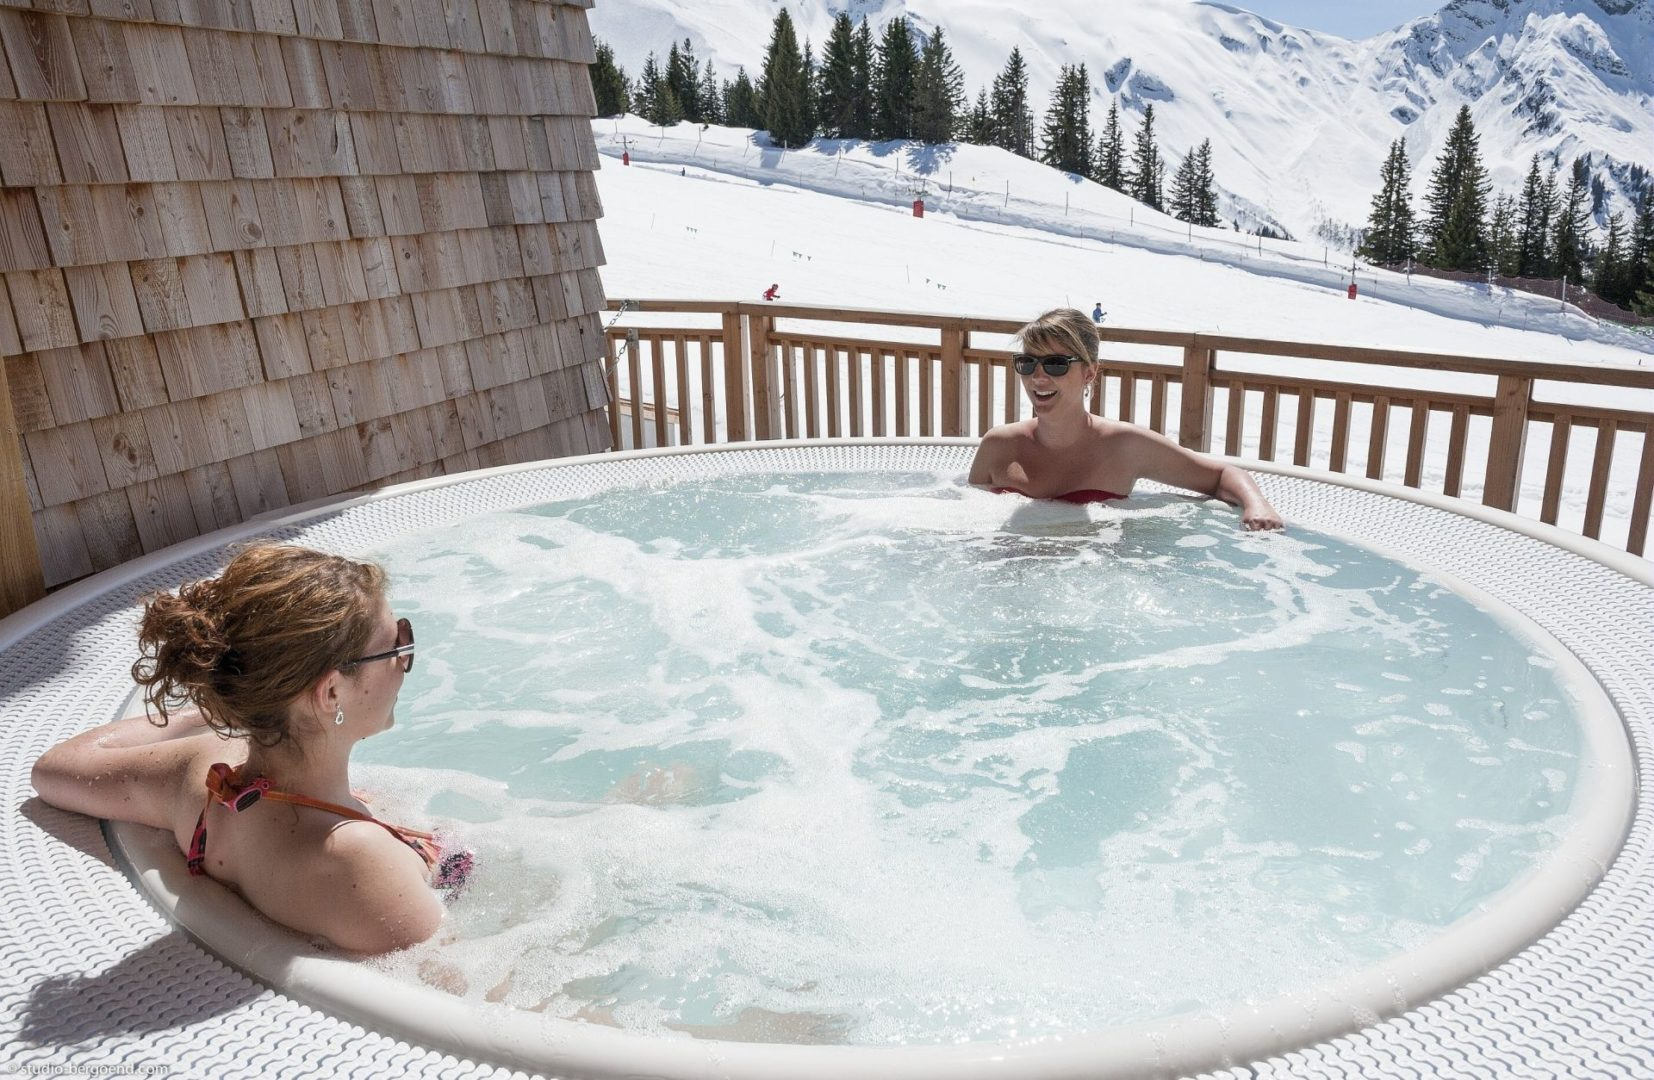 The jacuzzi in the spa